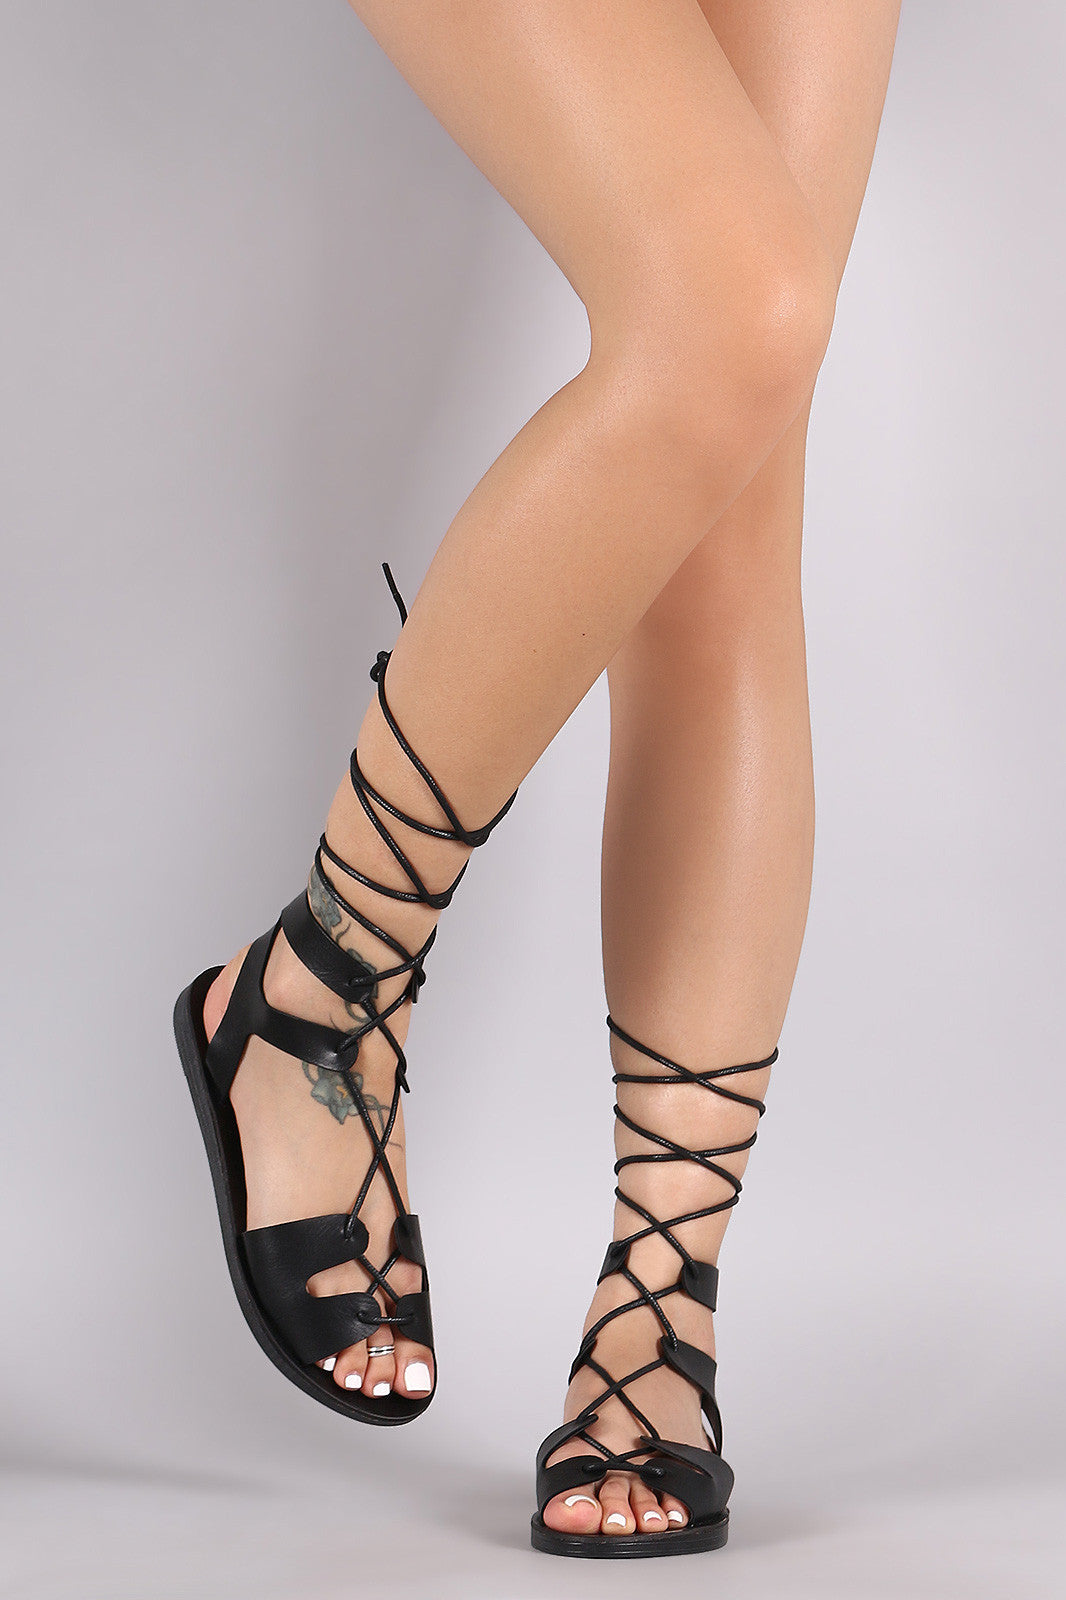 Breckelle Strappy Lace-Up Gladiator Flat Sandal - Thick 'N' Curvy Shop - 10